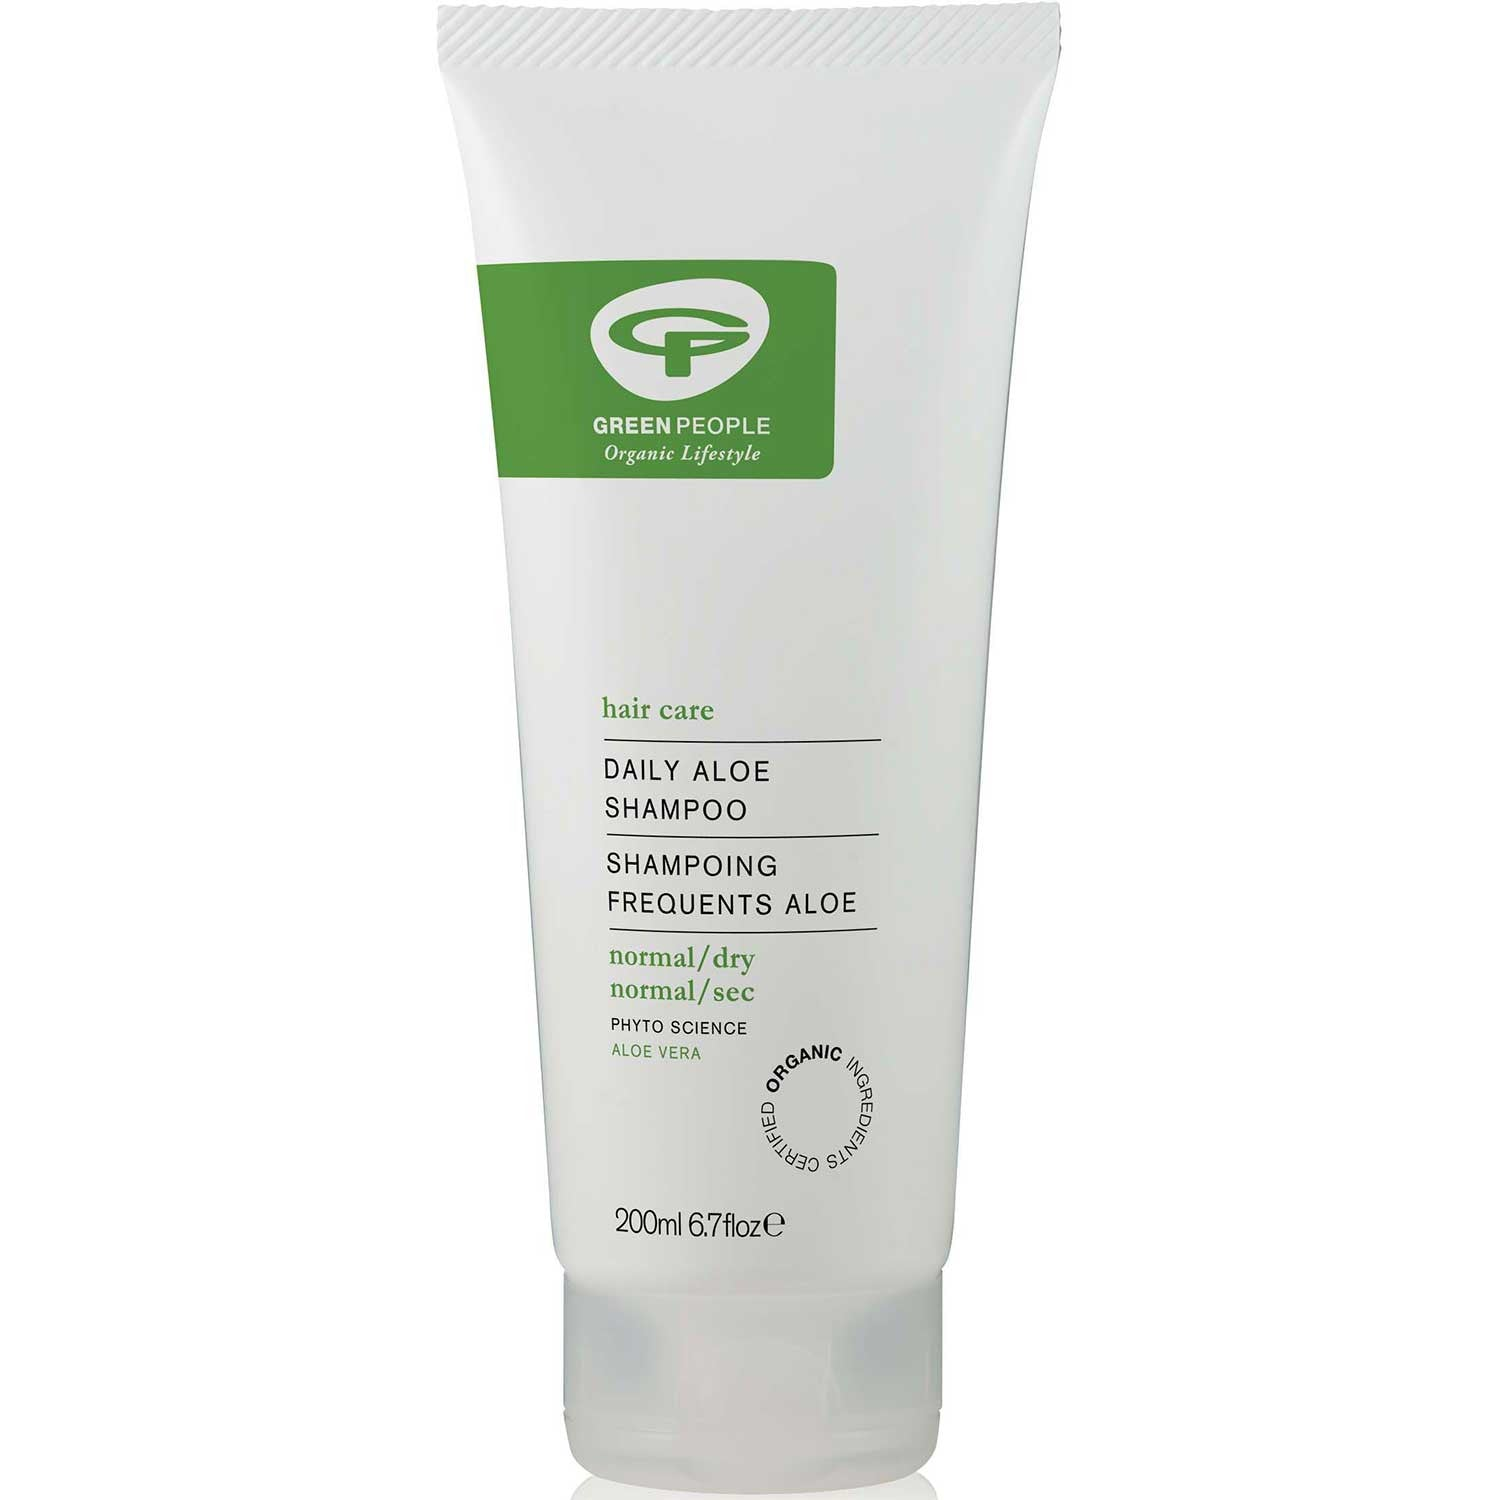 Green People Daily Aloe Shampoo, 200 ml.-NaturesWisdom